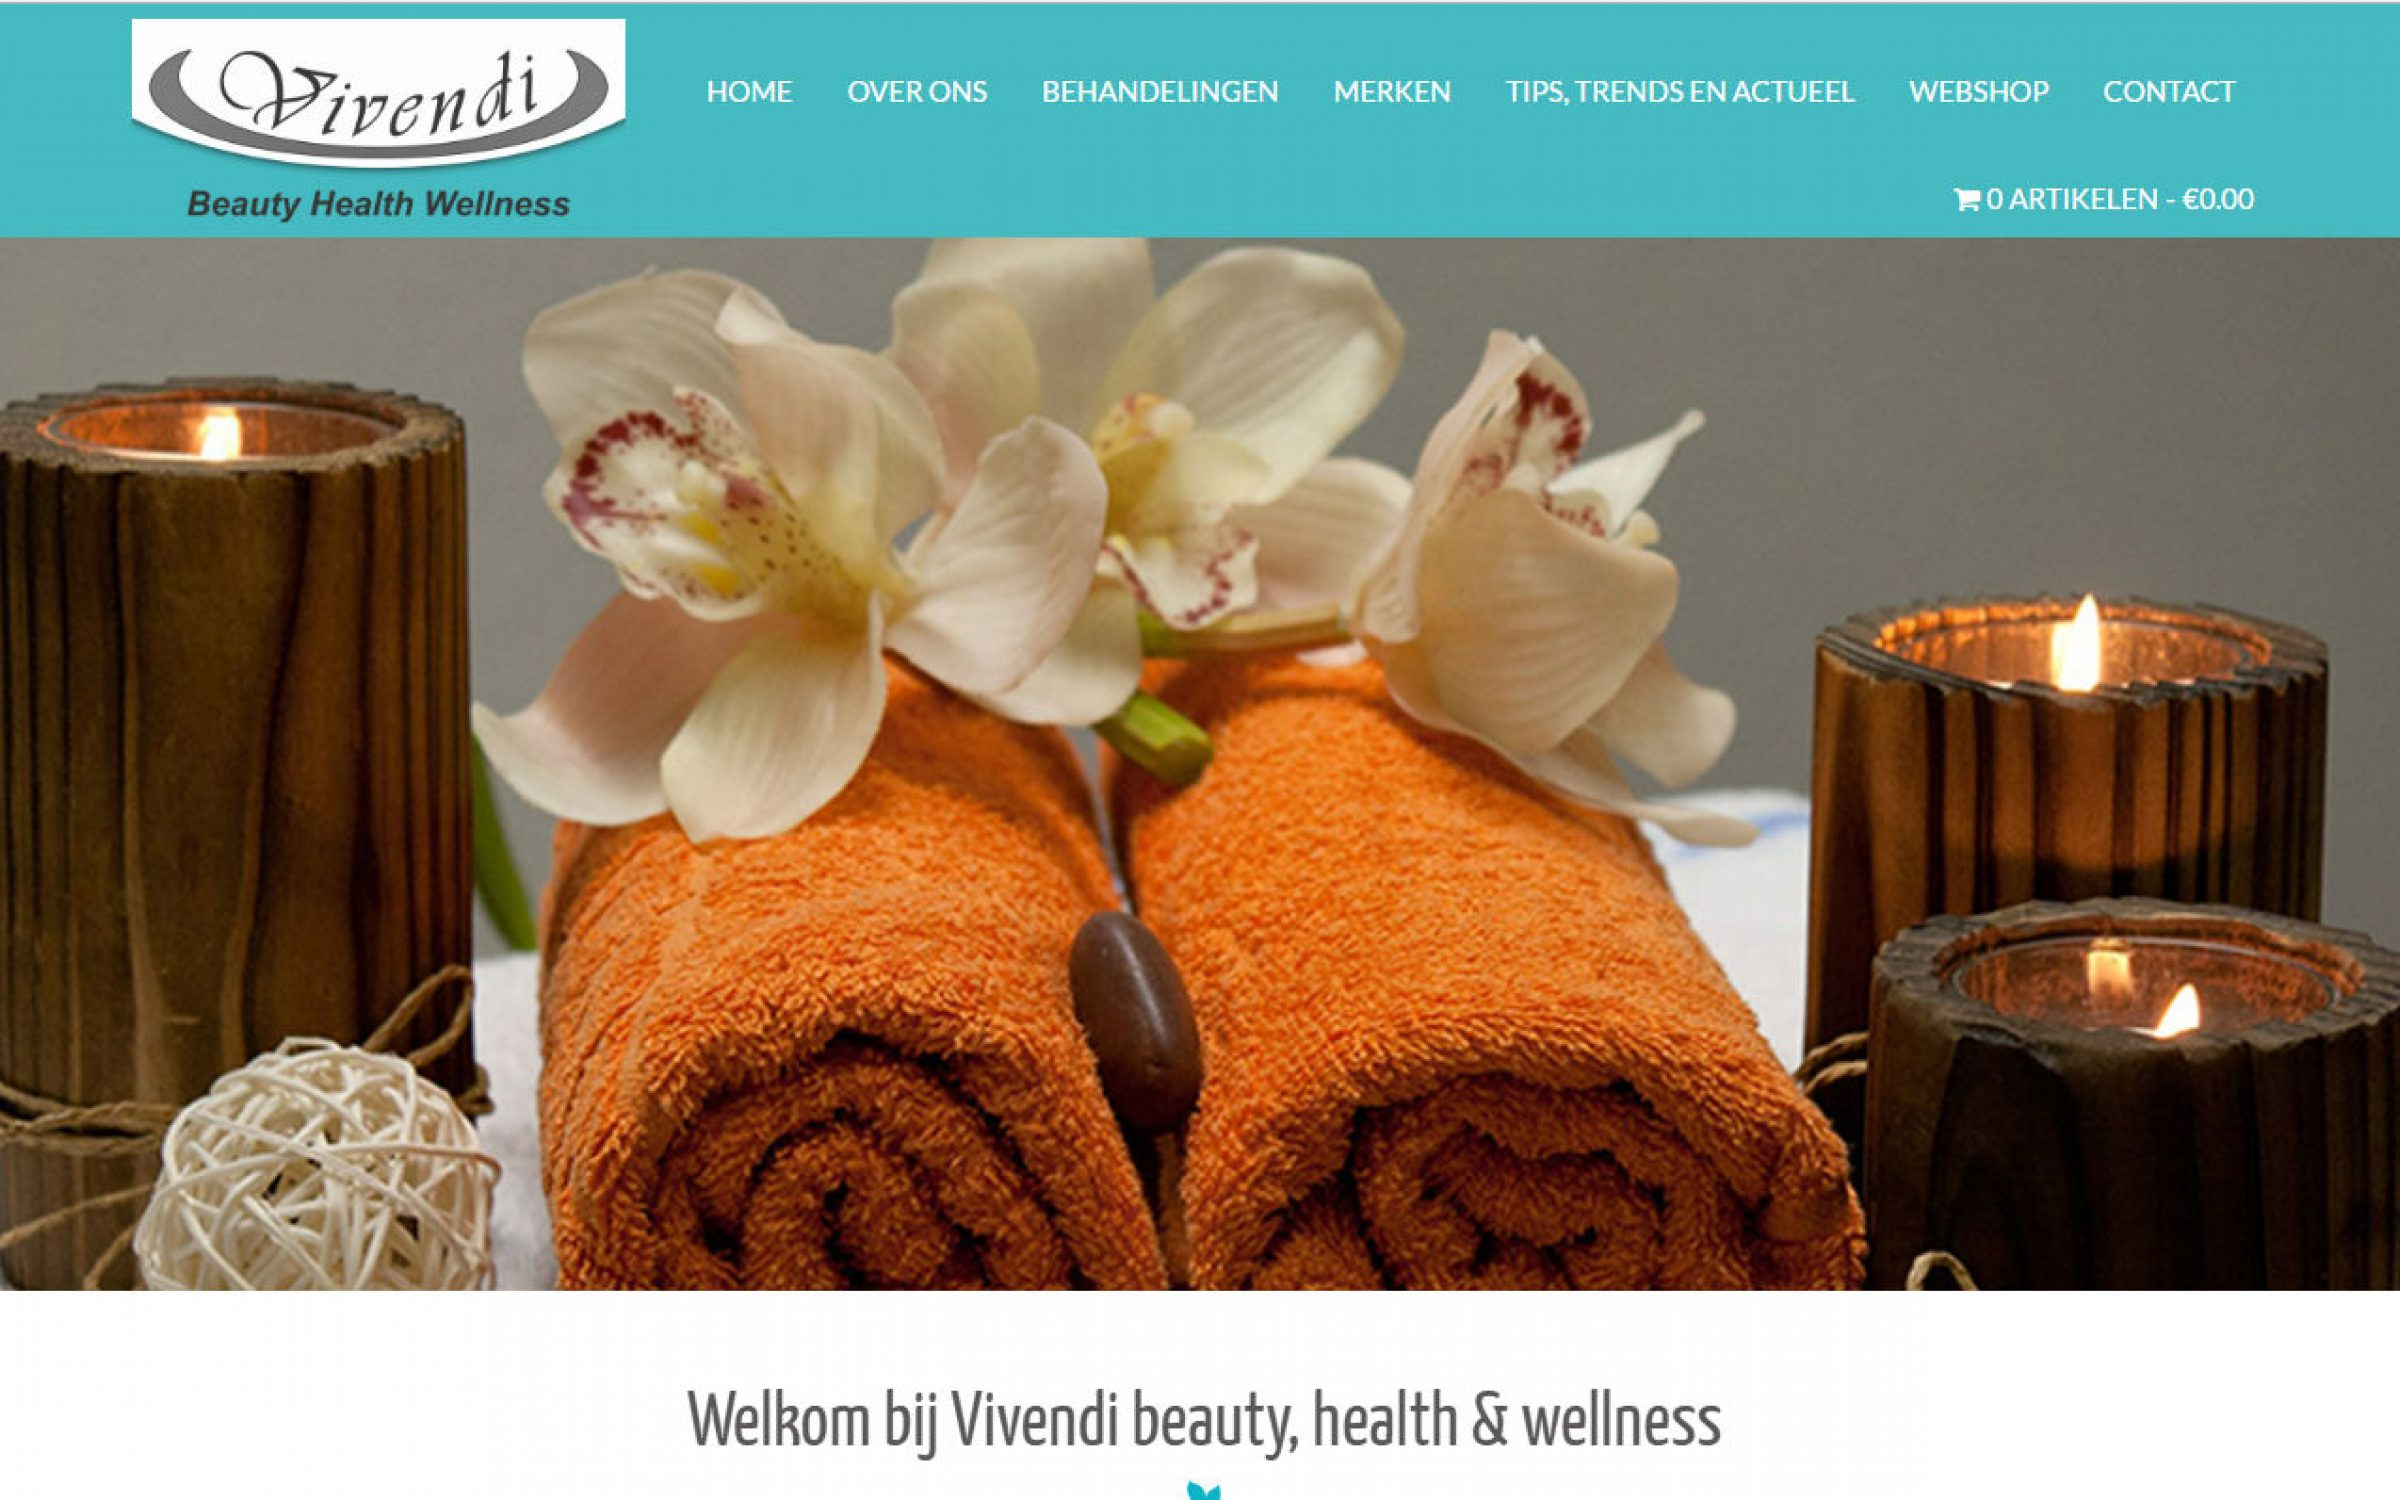 Vivendi Health & Beauty